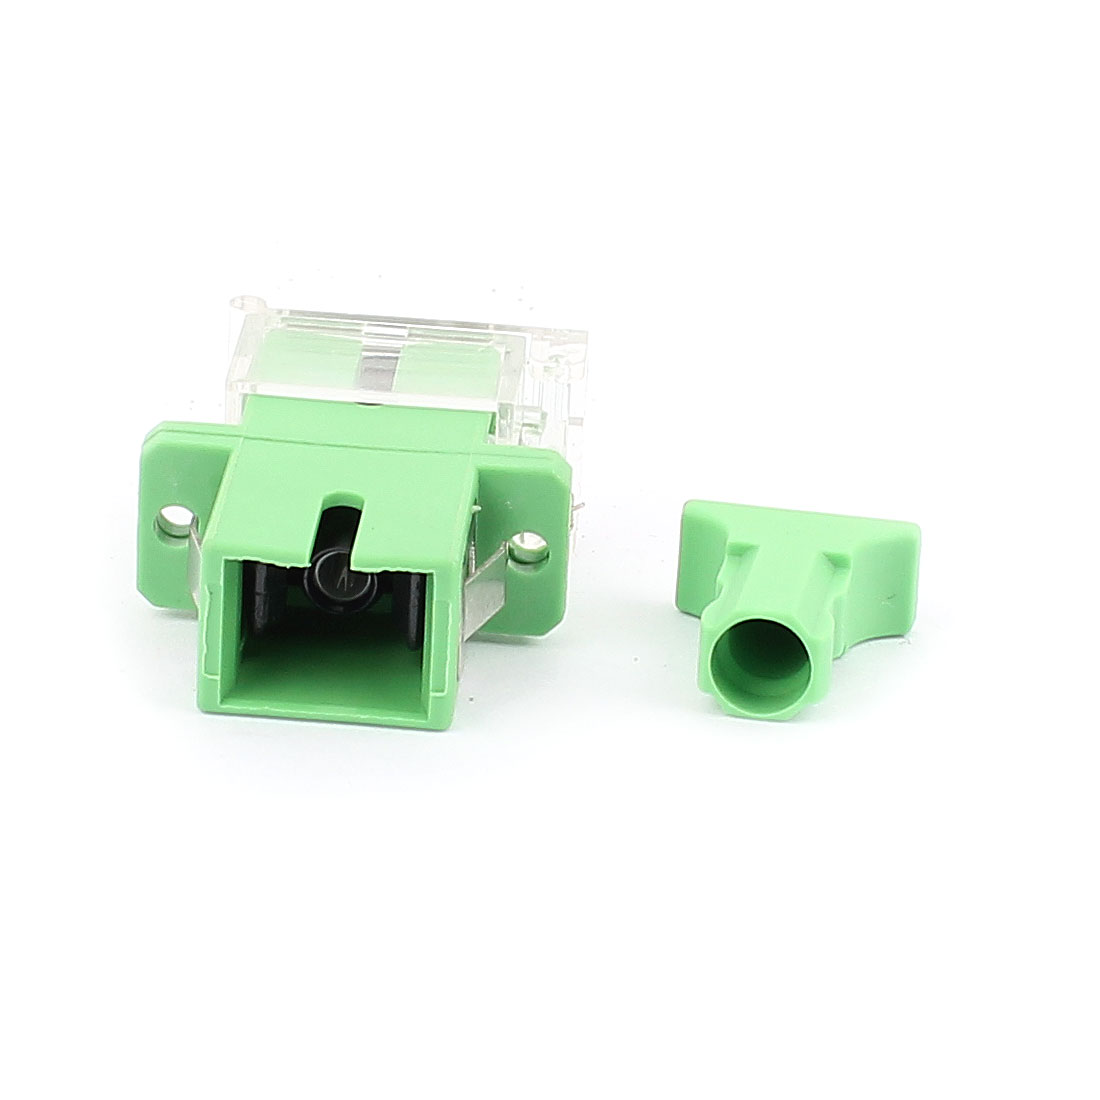 SM SC/APC Simplex Fibre Coupling Flange Optical Fiber Adapter w Anti-dust Cap Green